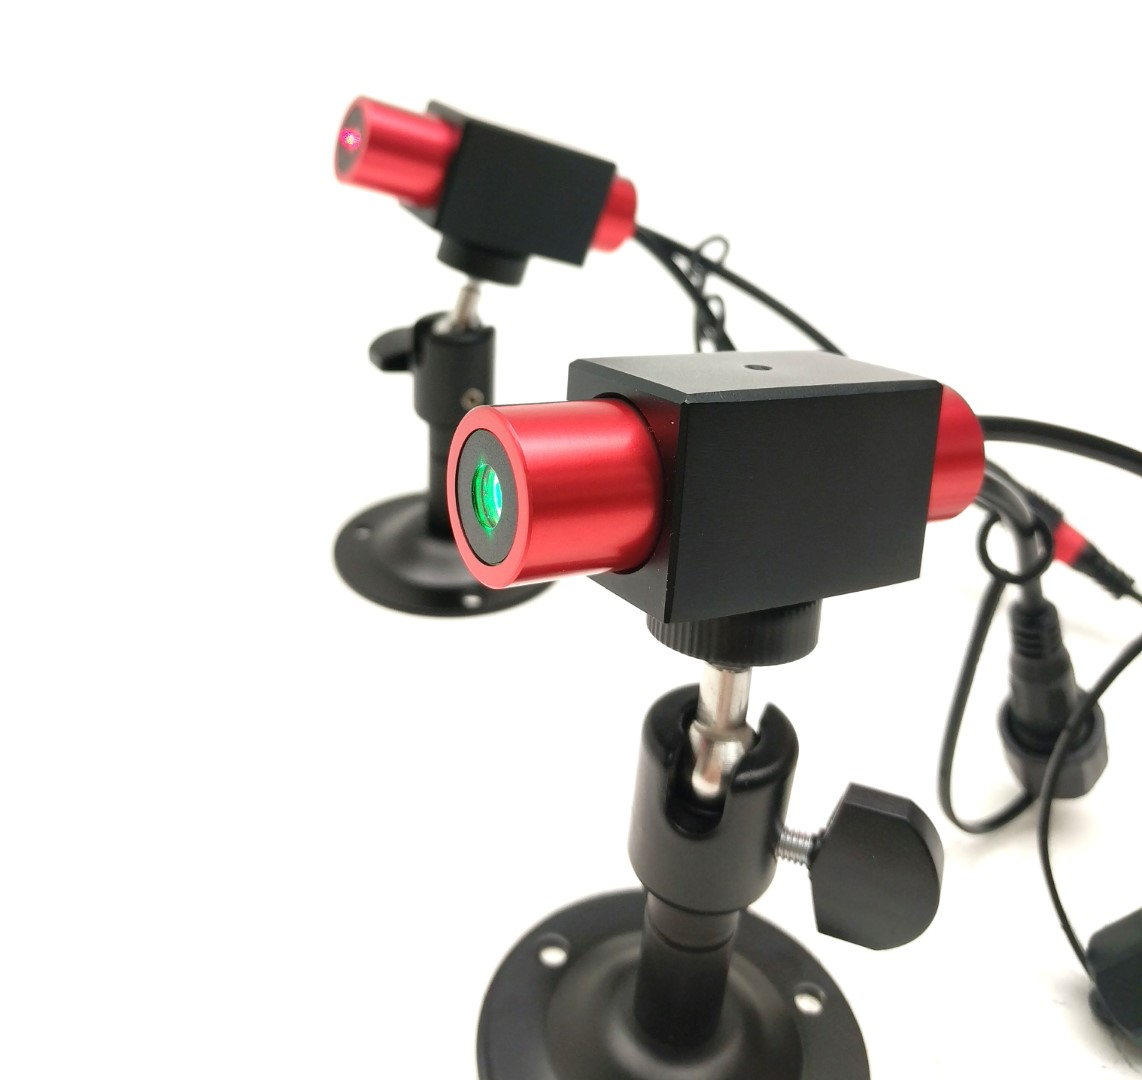 20 mW 635 nm Red Premium Structured Line of 11 dots Laser, 17° fan angle, adjustable focus, TTL+, Sealed IP67